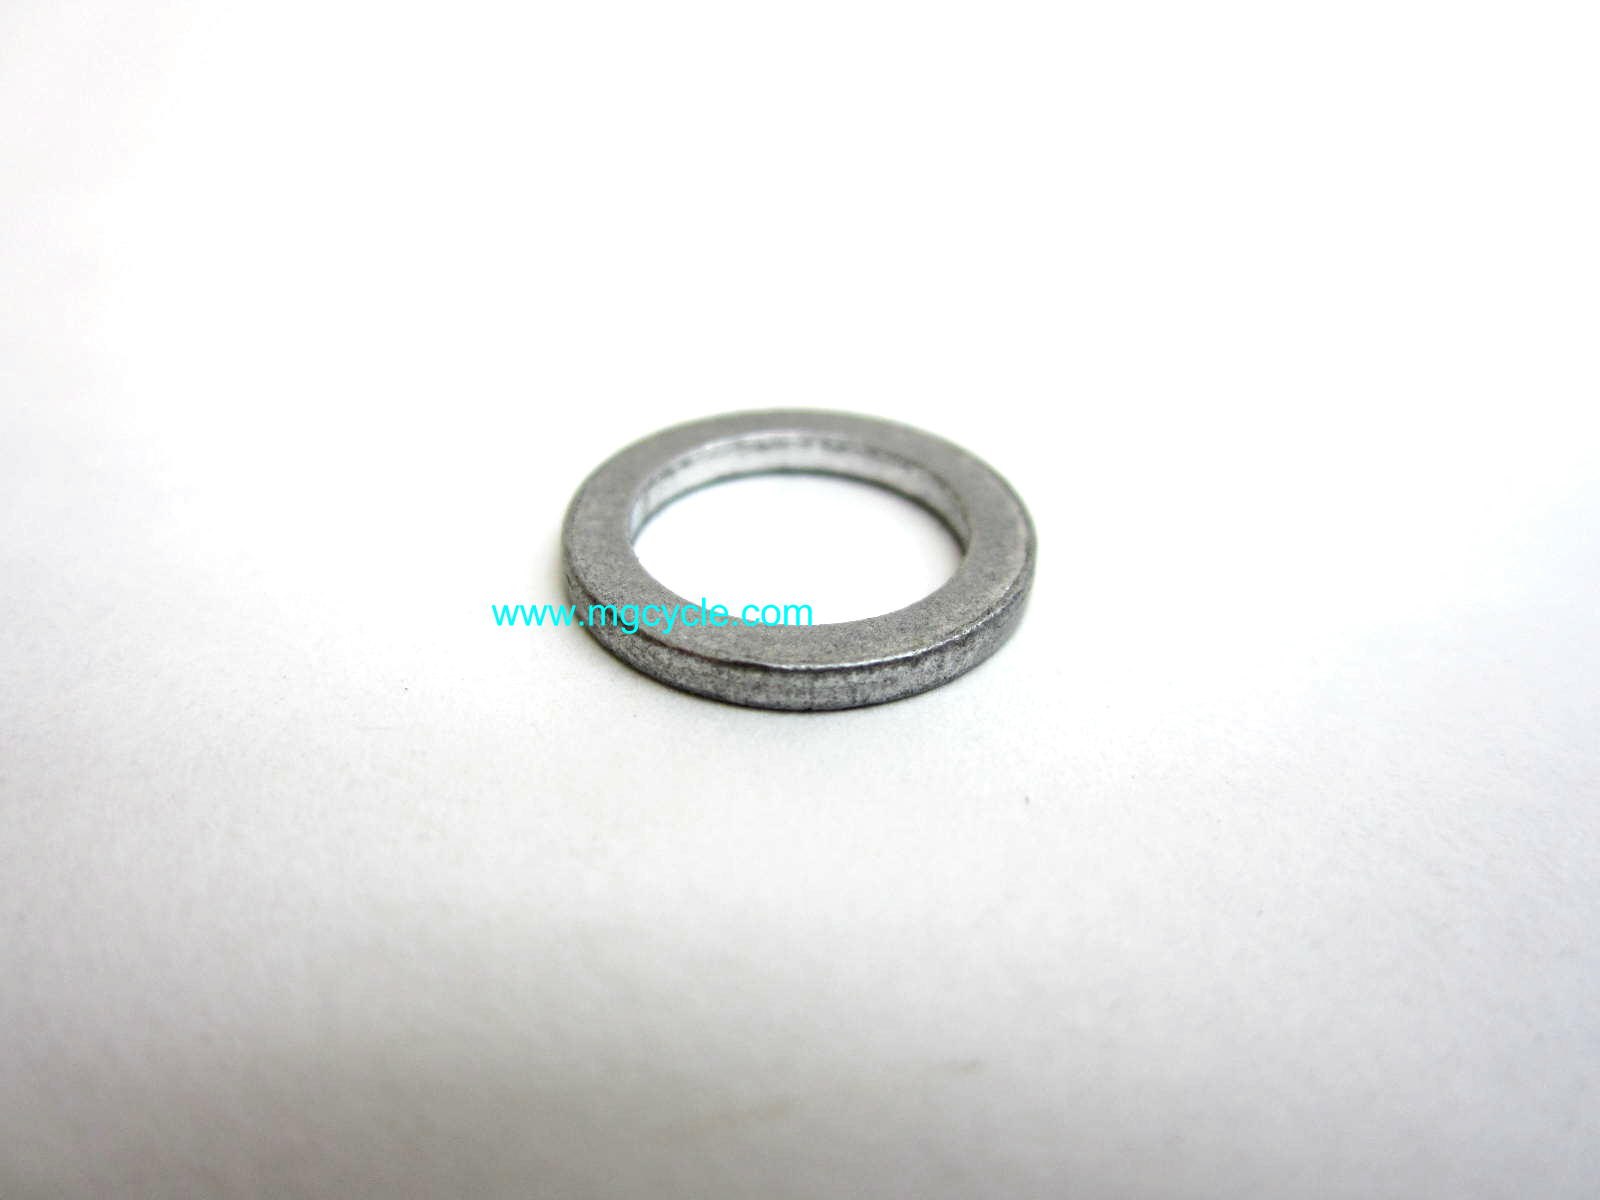 10mm aluminum seal washer, brake and oil lines, fork bottom bolt